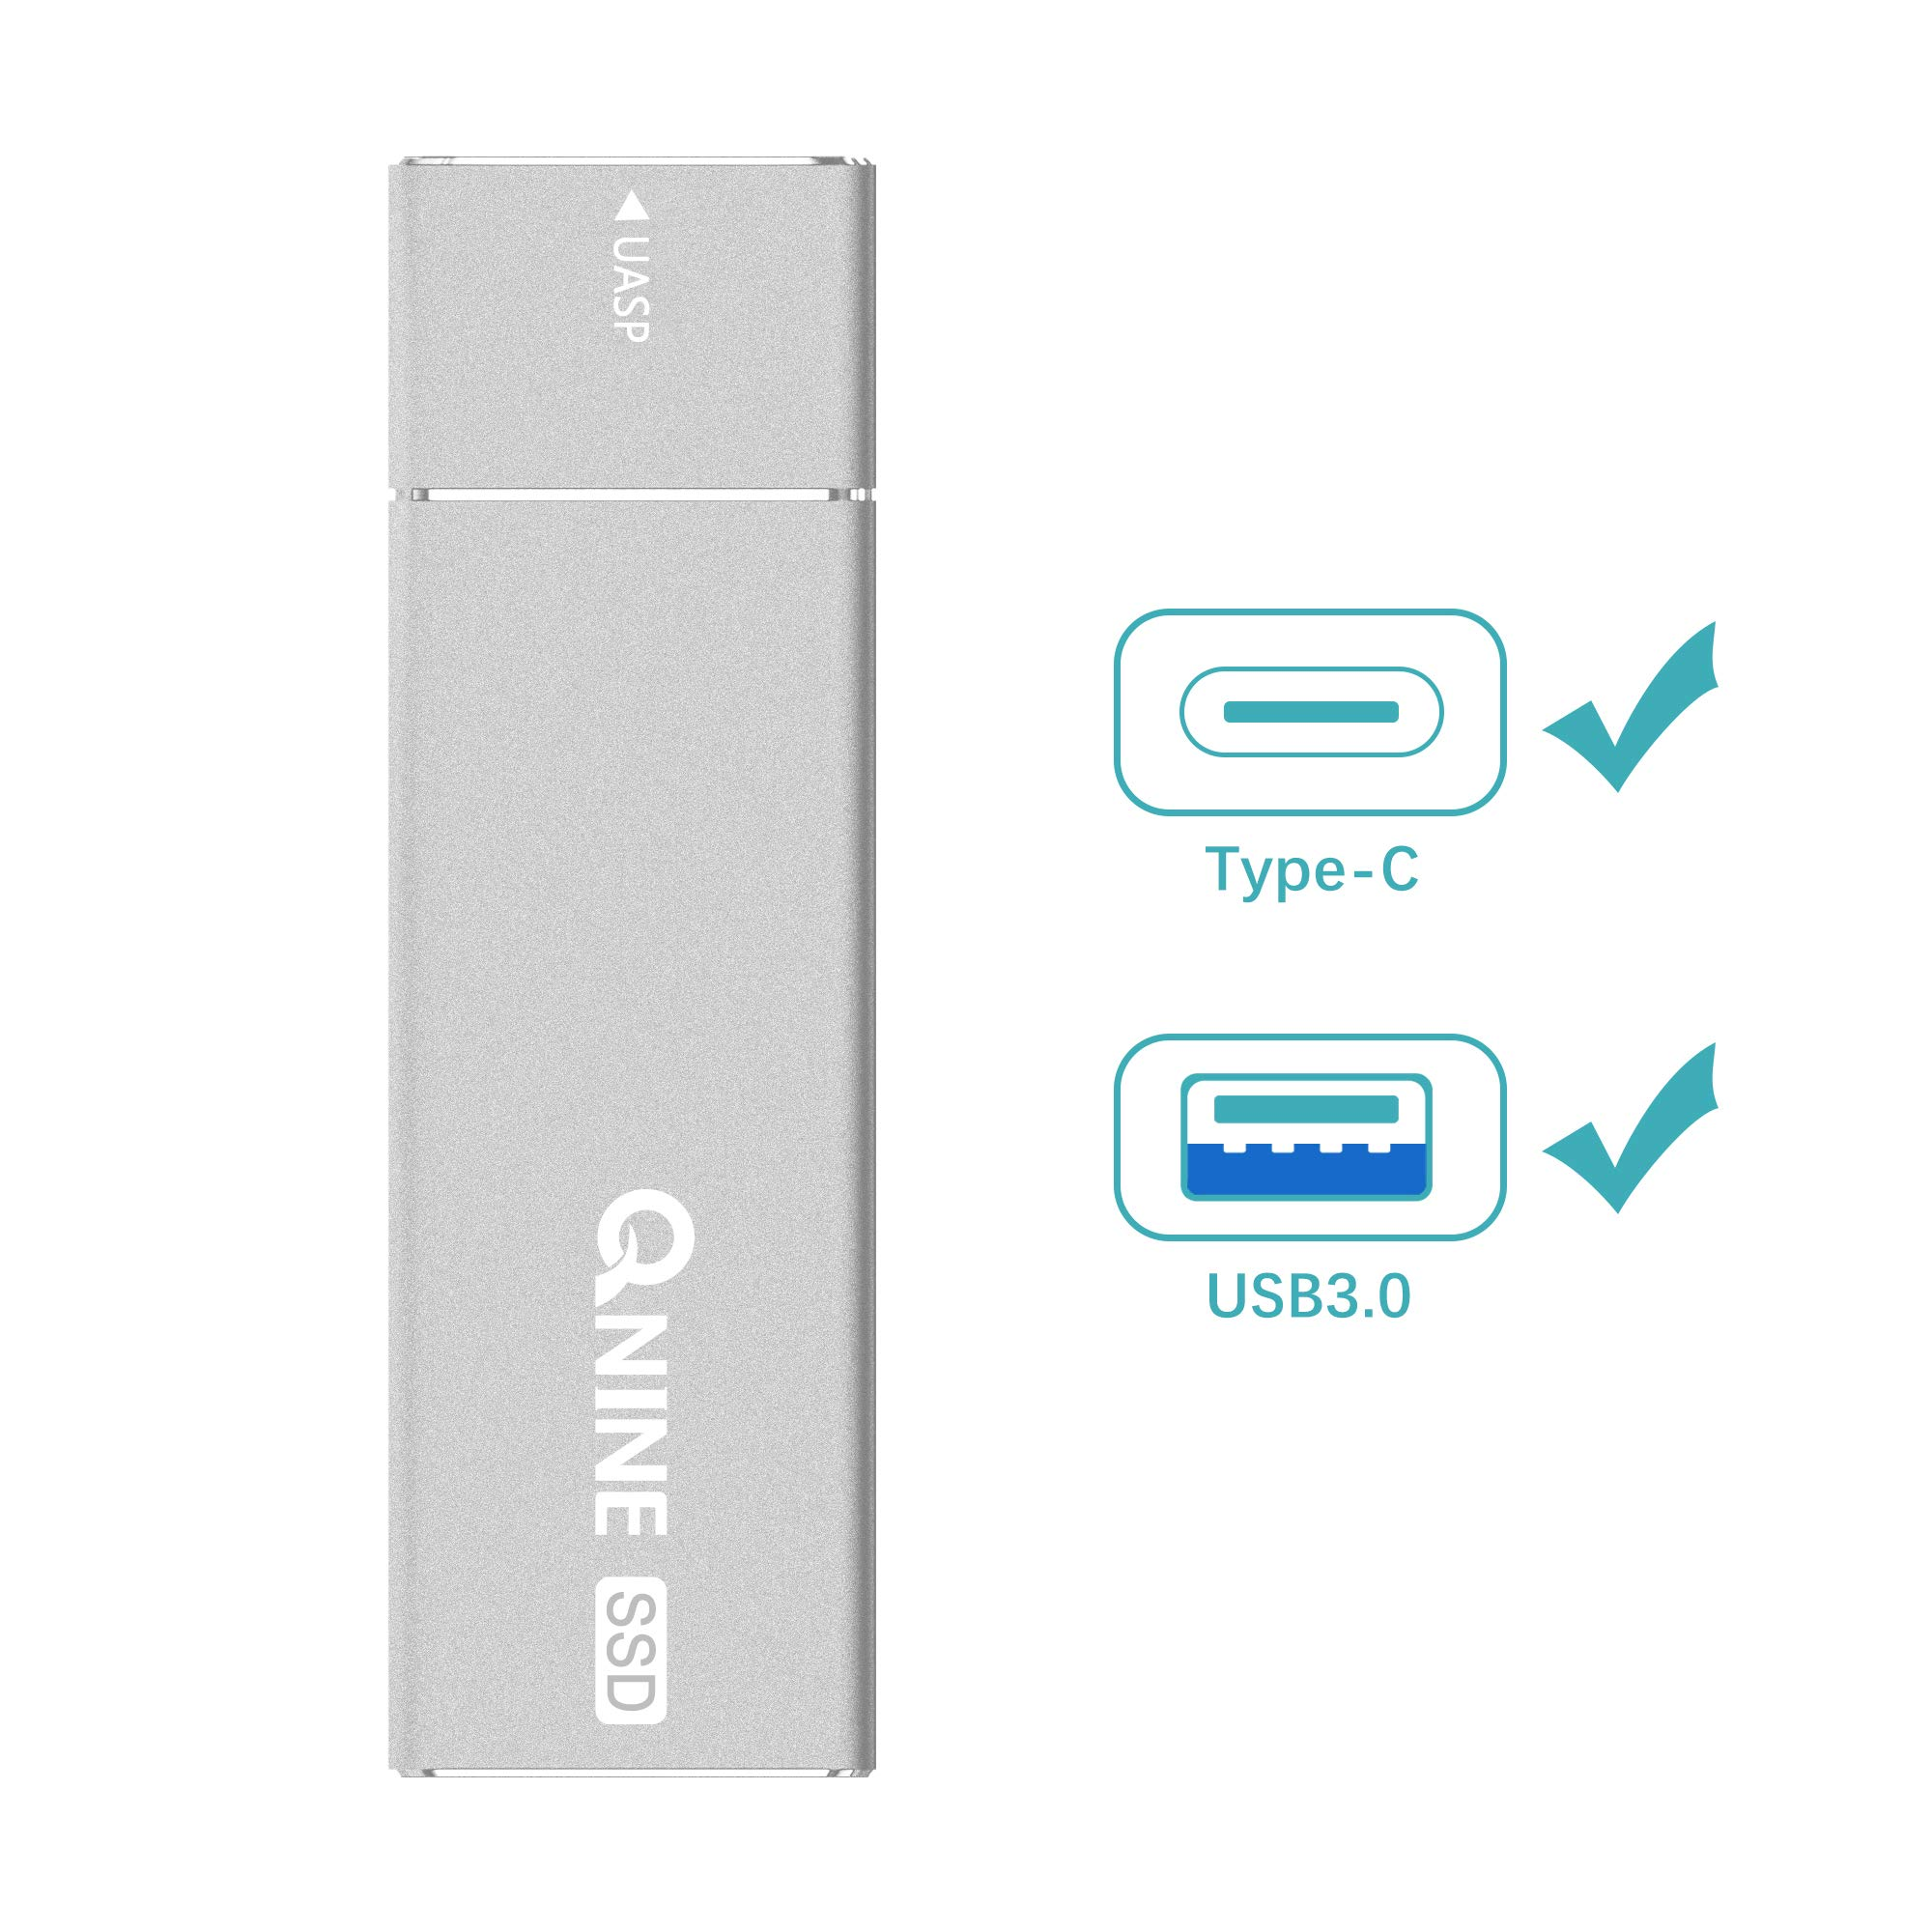 QNINE 512Gb Extreme Portable SSD (1.1 oz Weight), USB C SSD External Hard Drive - USB 3.1 High Speed External SSD for MacBook Pro, Xbox One X, etc